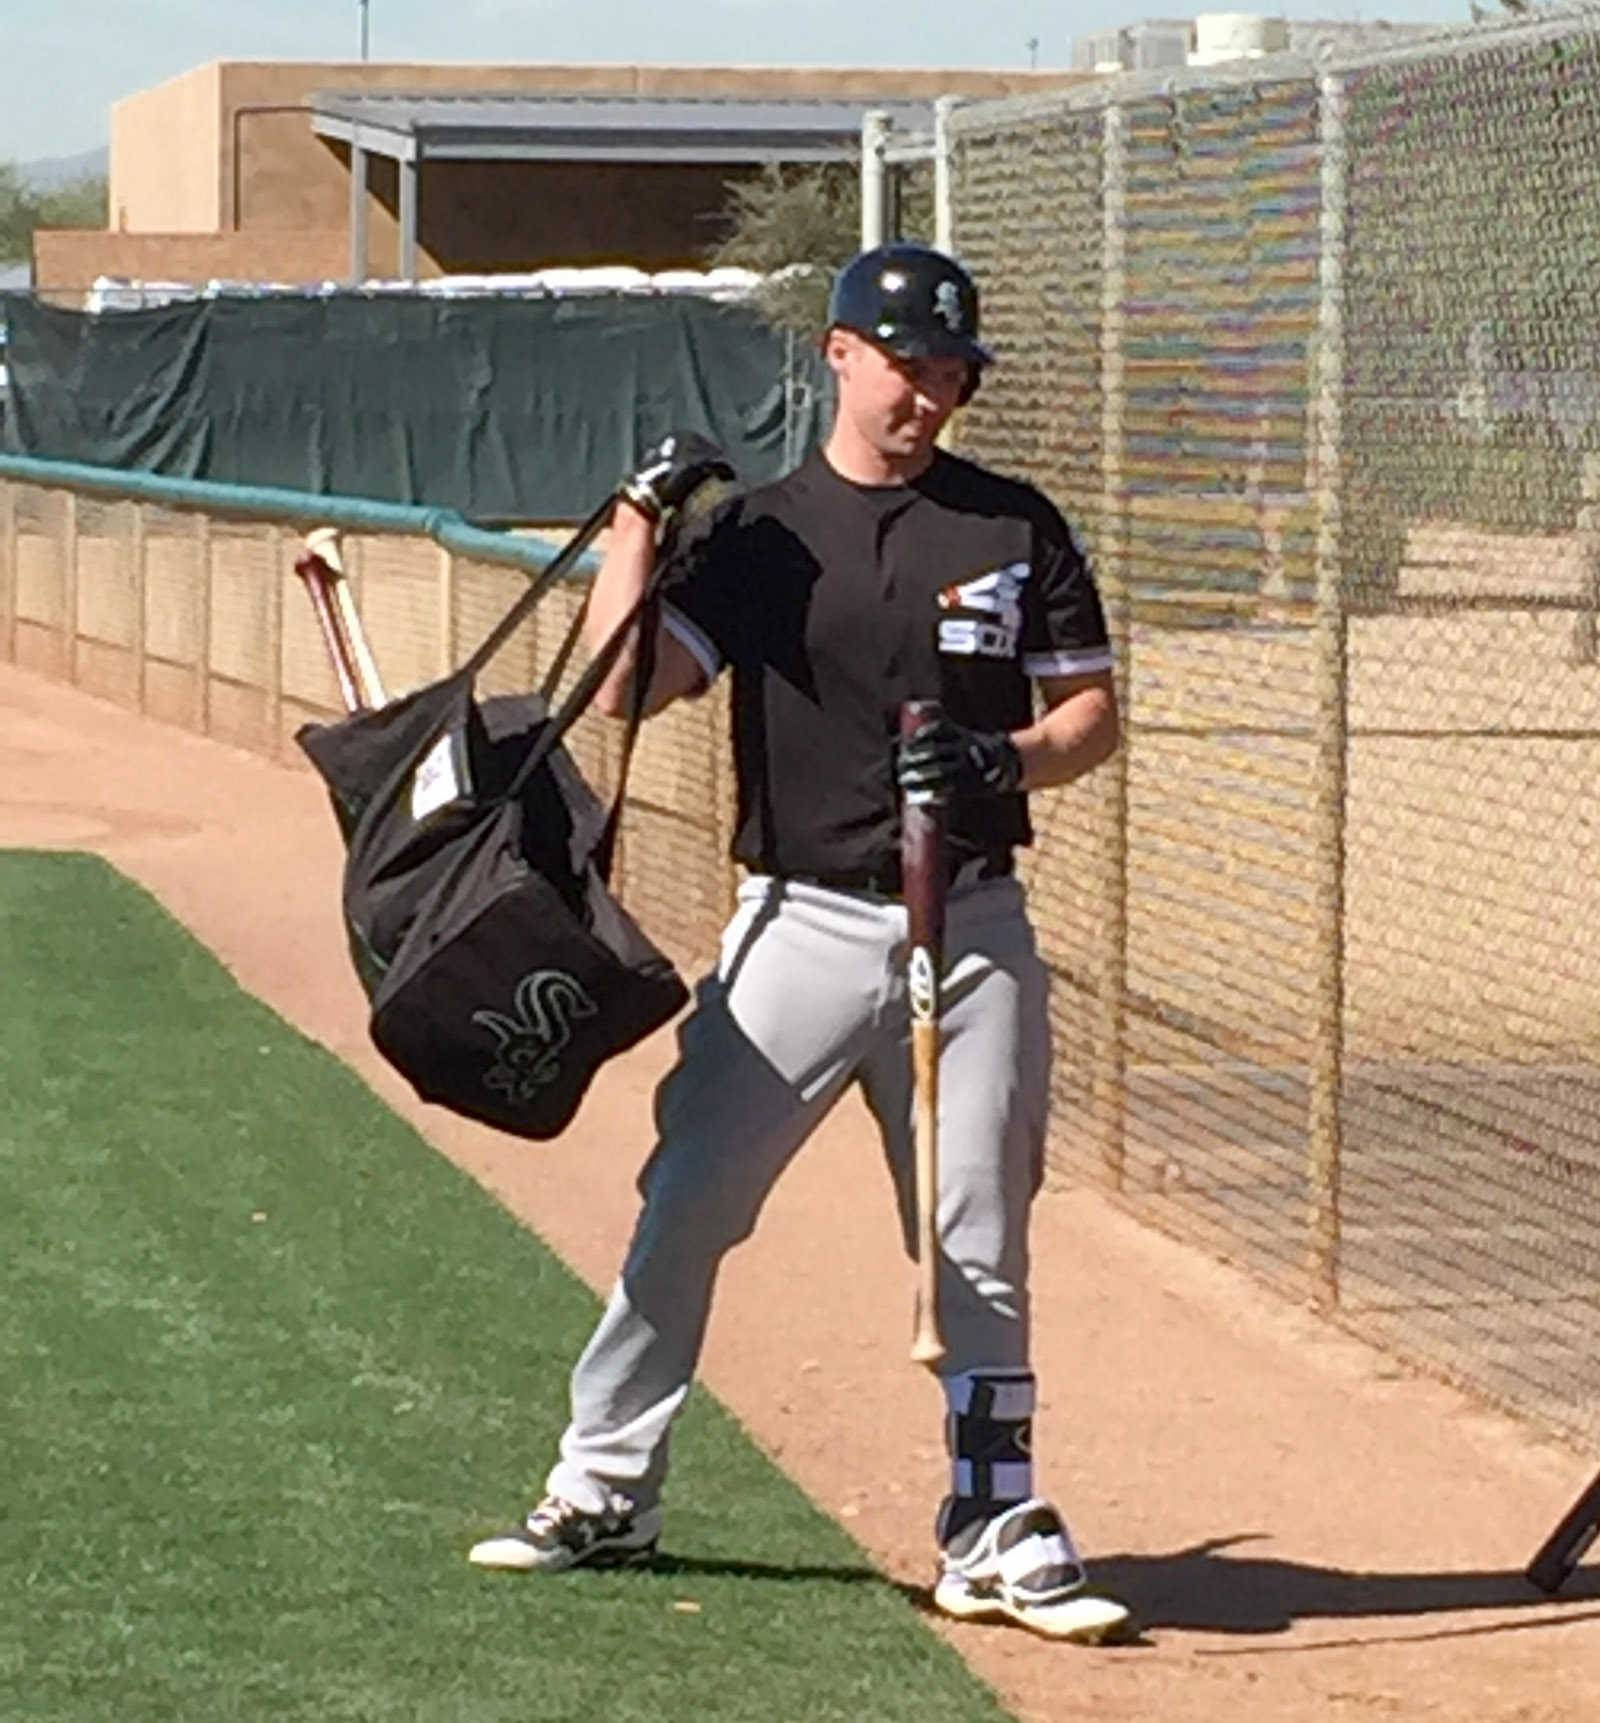 Third baseman Matt Davidson is happy he's still getting a chance to win a spot with the Chicago White Sox.